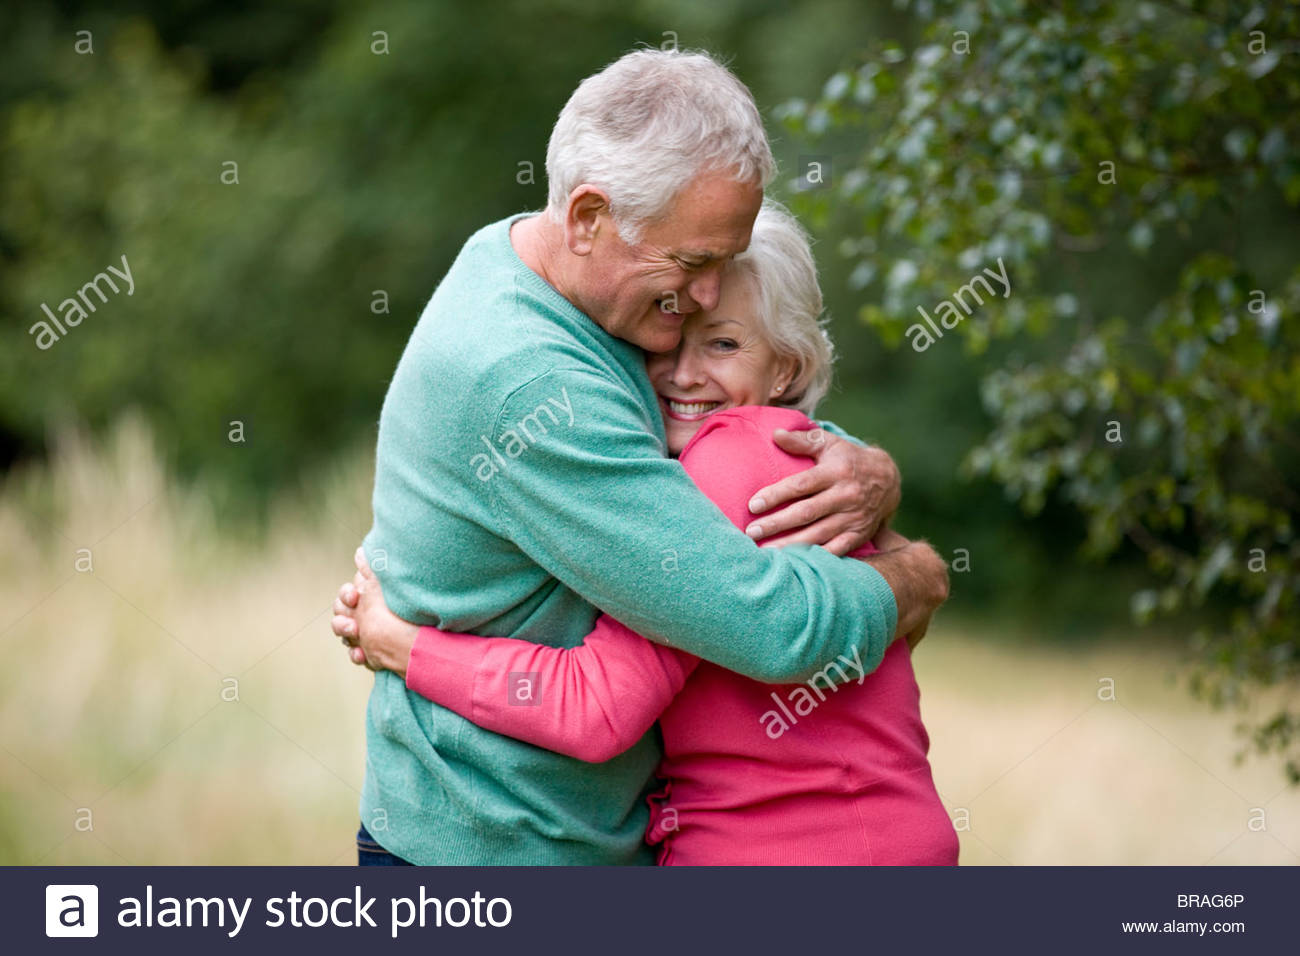 Portrait of a senior couple hugging, outdoors Stock Photo